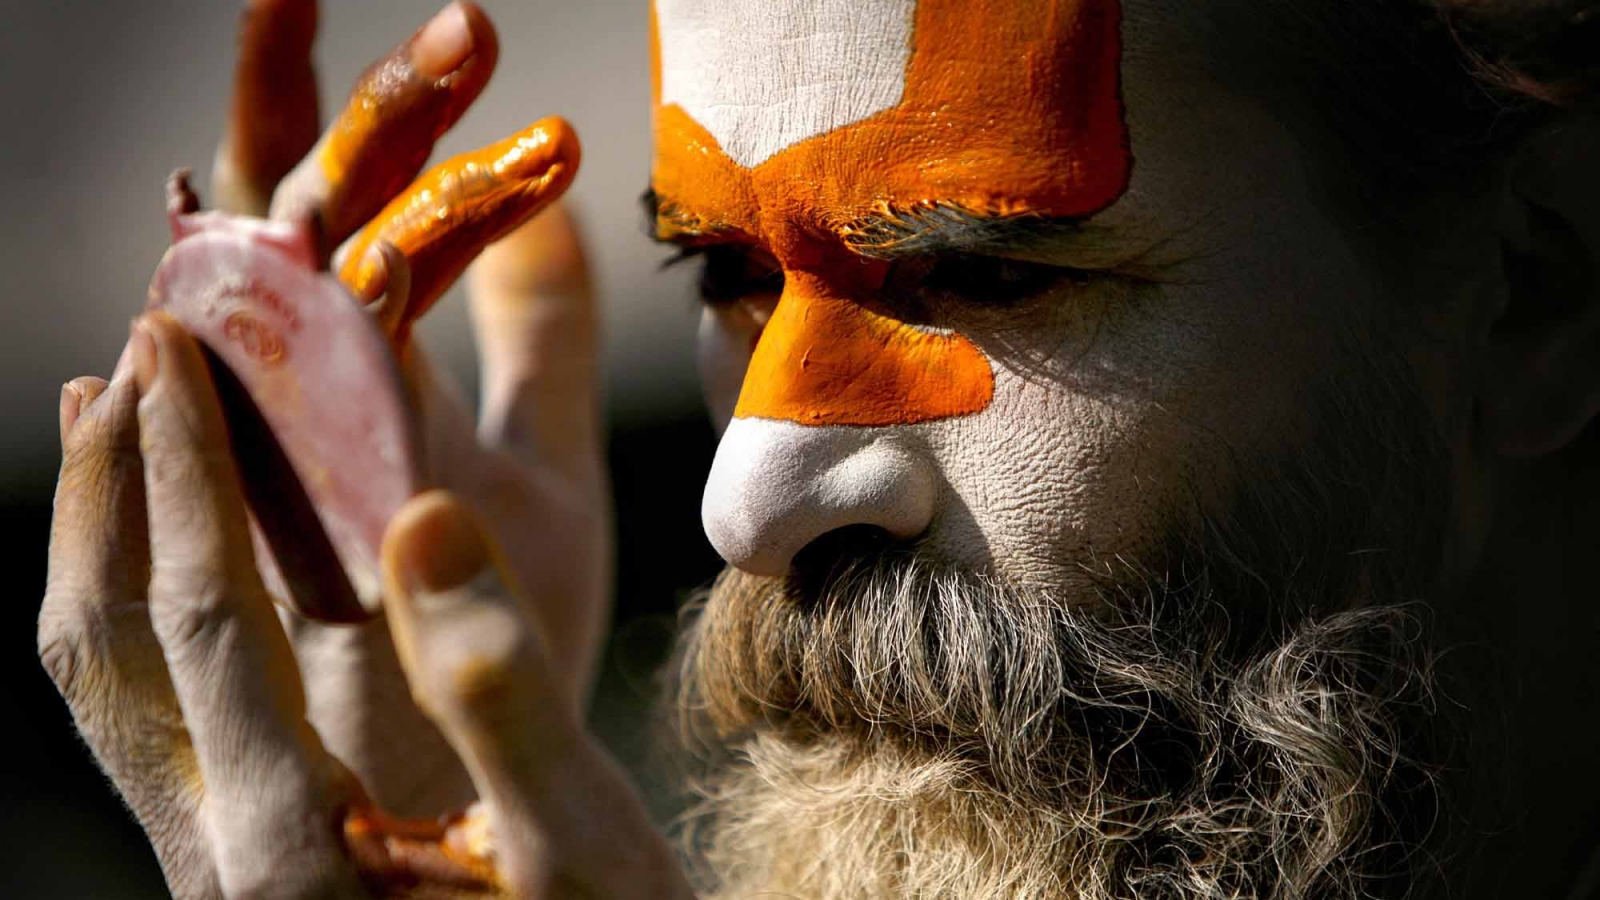 A sadhu (holy man) smearing colourful powder on forehead on the Pashupatinath temple premises, Kathmandu on Thursday. Photo: NAVESH CHITRAKAR